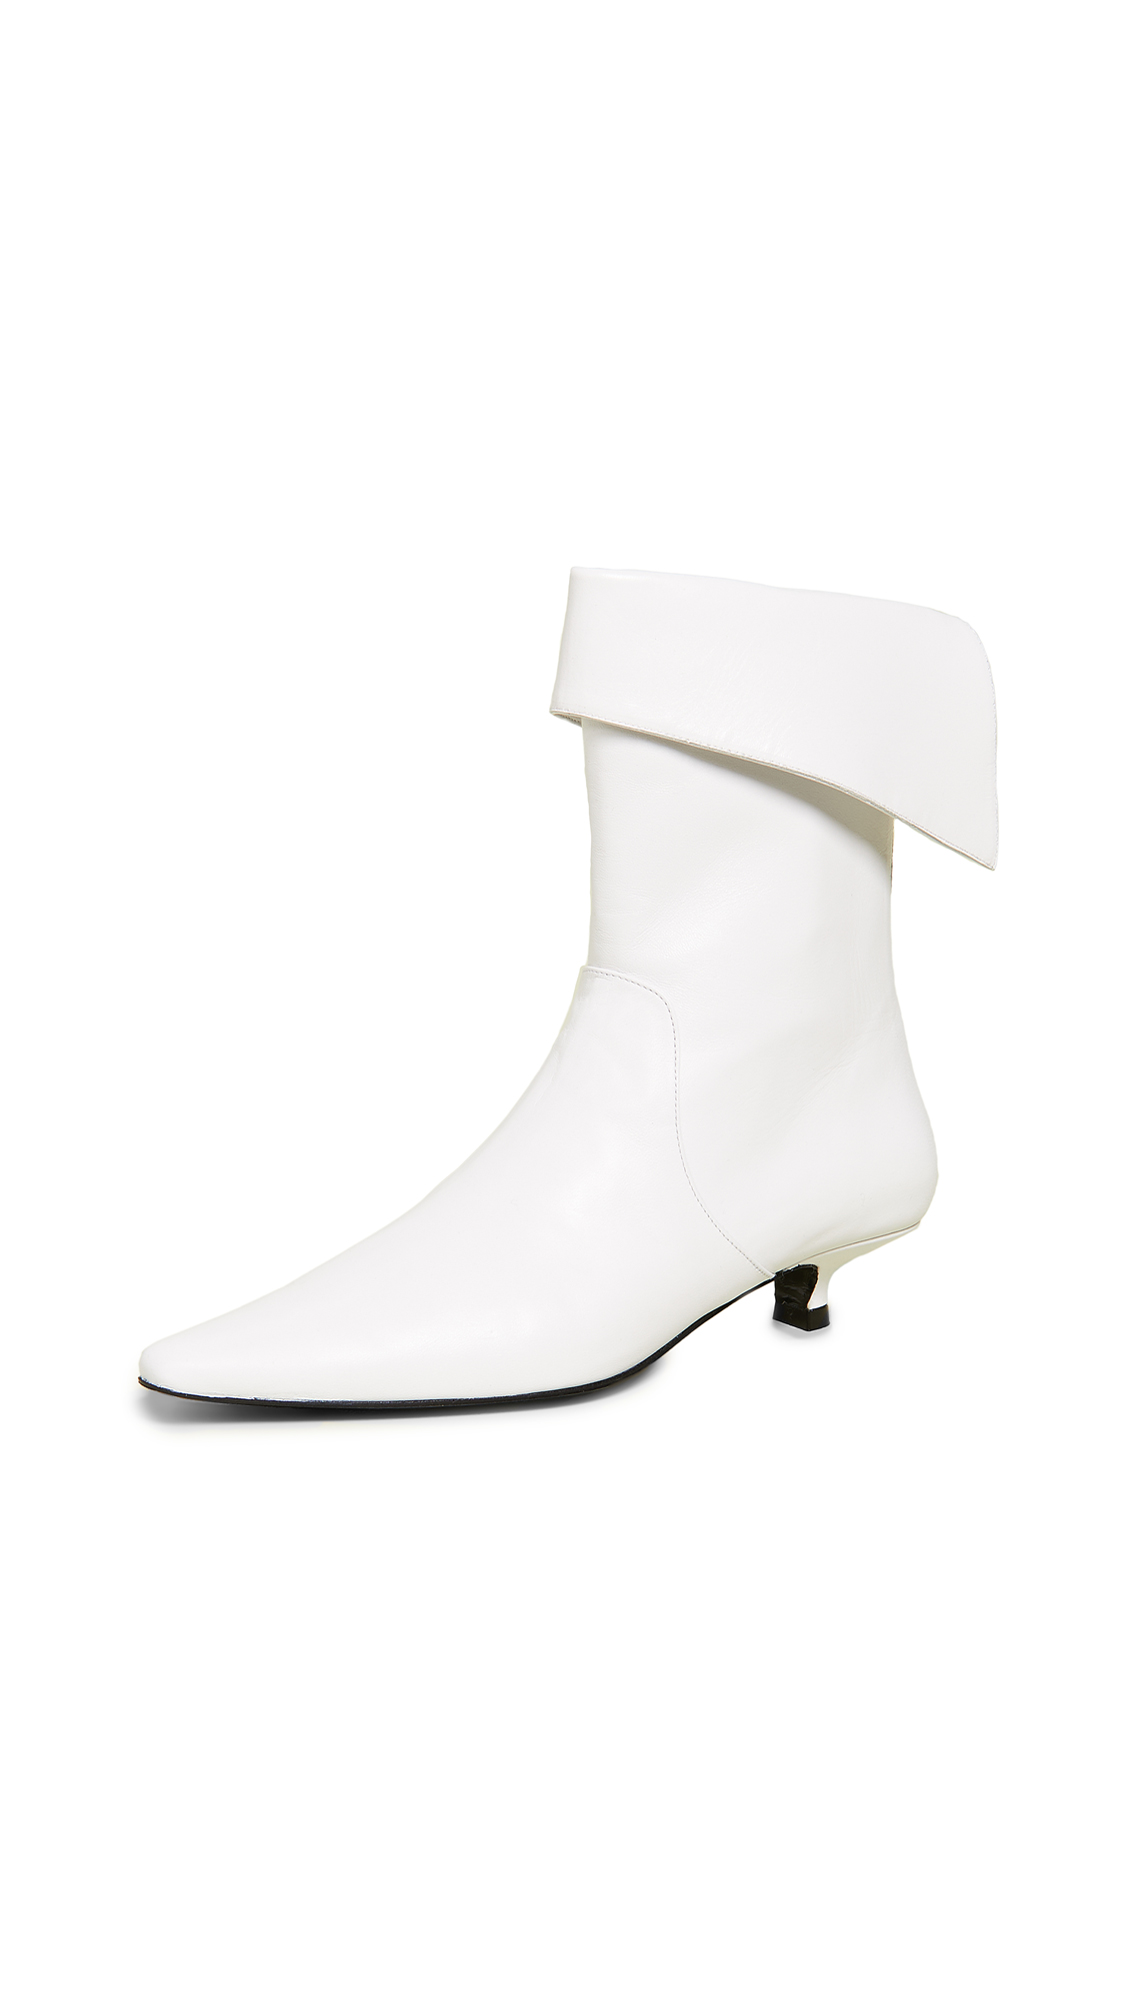 Dorateymur Crucified Ankle Boots - White